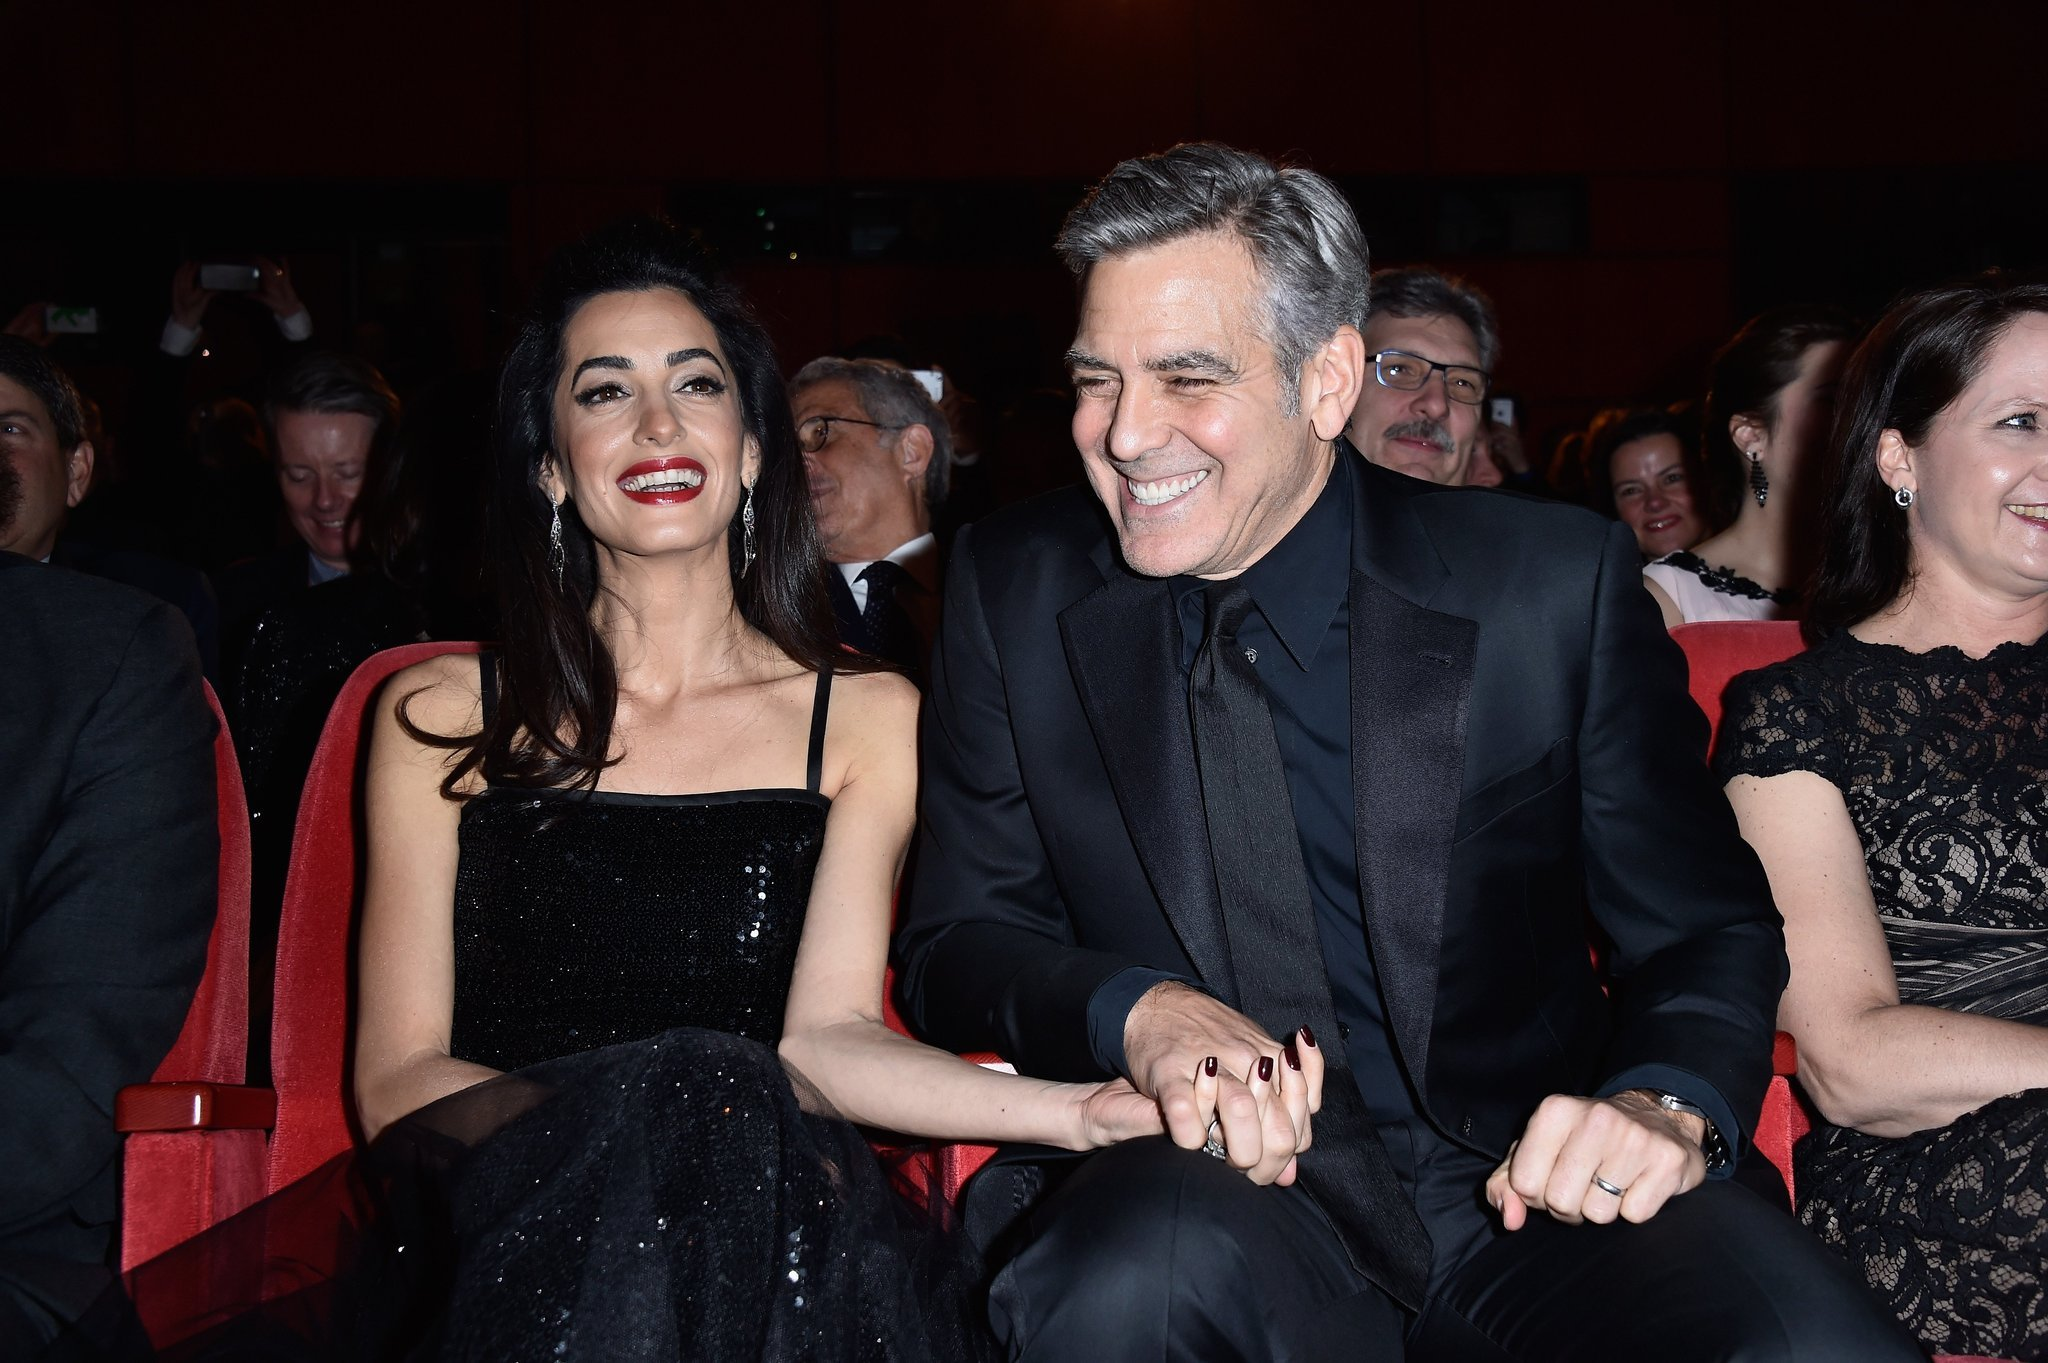 George and wife Amal Clooney welcome twins Ella and Alexander